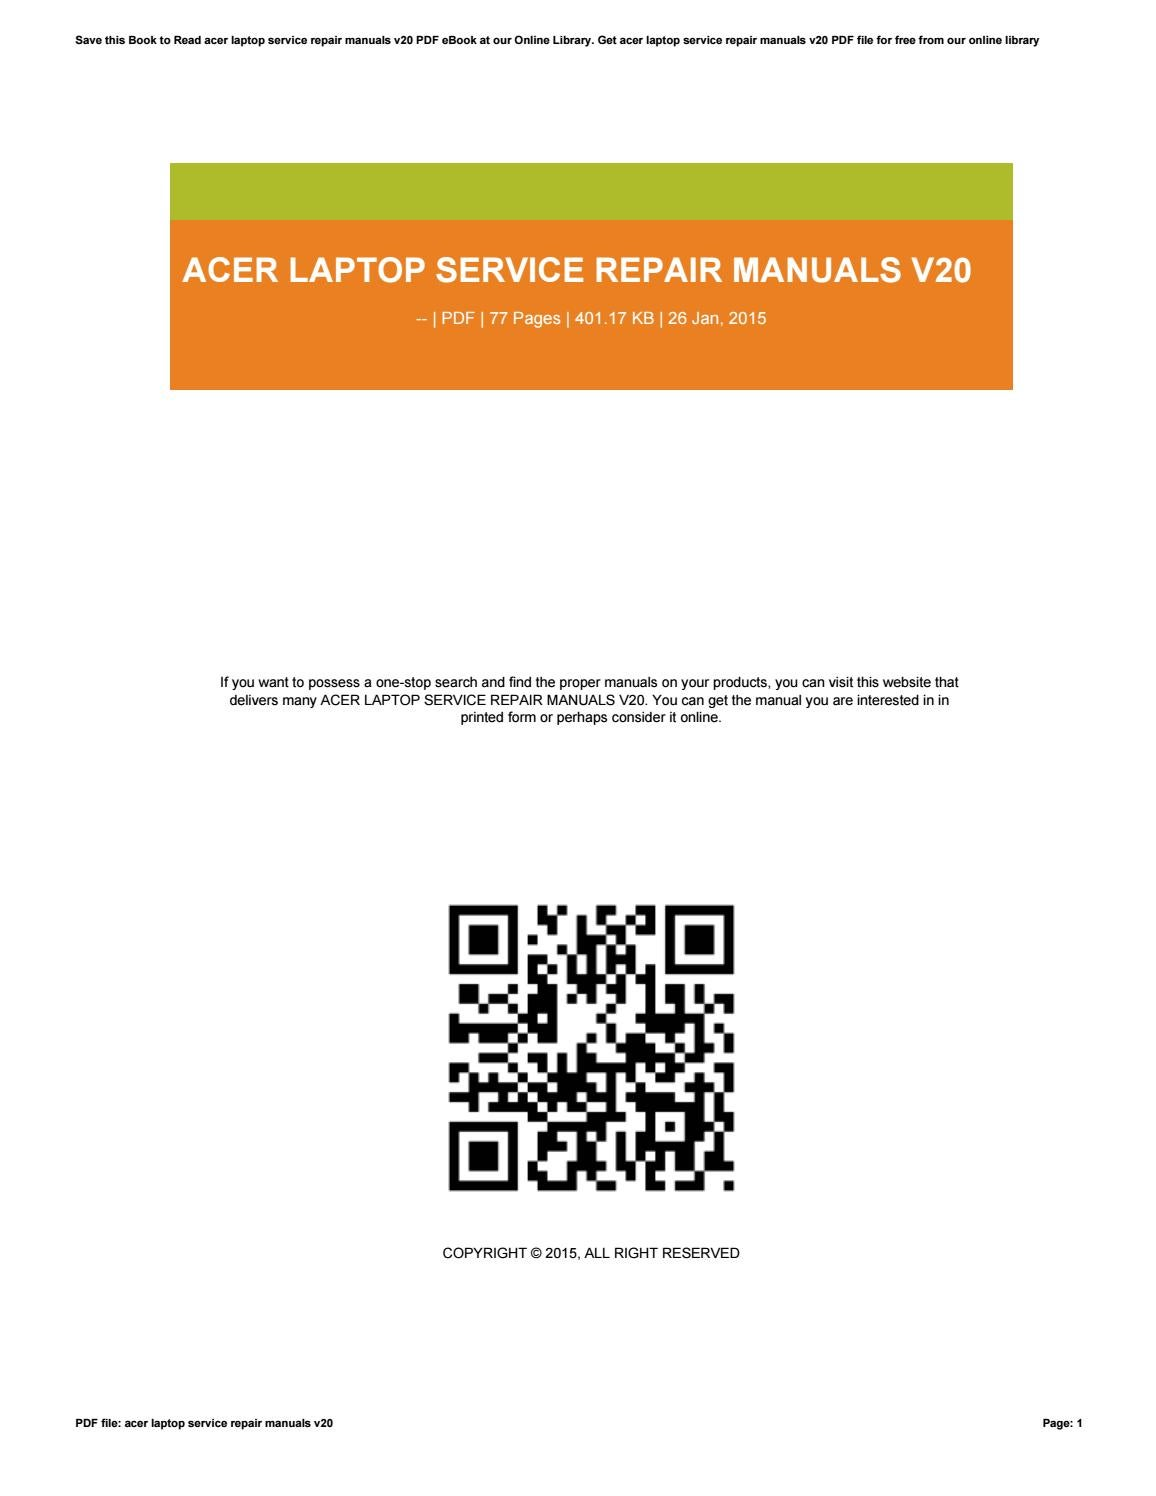 ... Array - acer laptop service repair manuals v20 by caseedu11 issuu rh  issuu com Array - owners manual acer aspire one ...